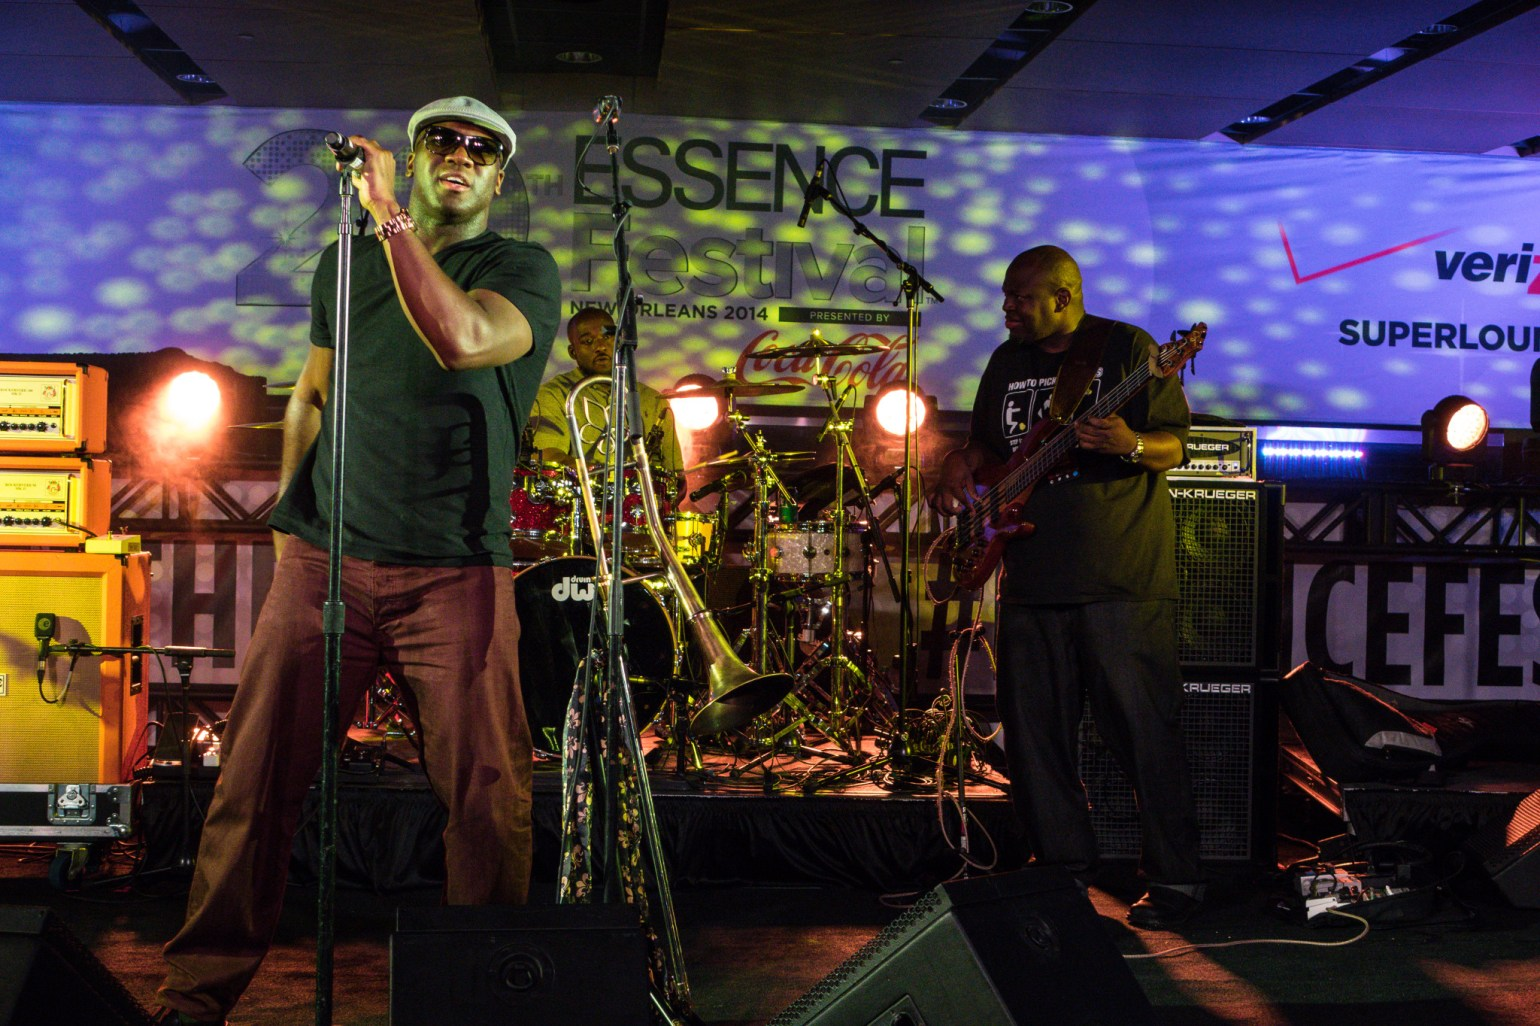 Local group Big Sam's Funky Nation performing at an ESSENCE Superlounge. (Photo: Paul Broussard)